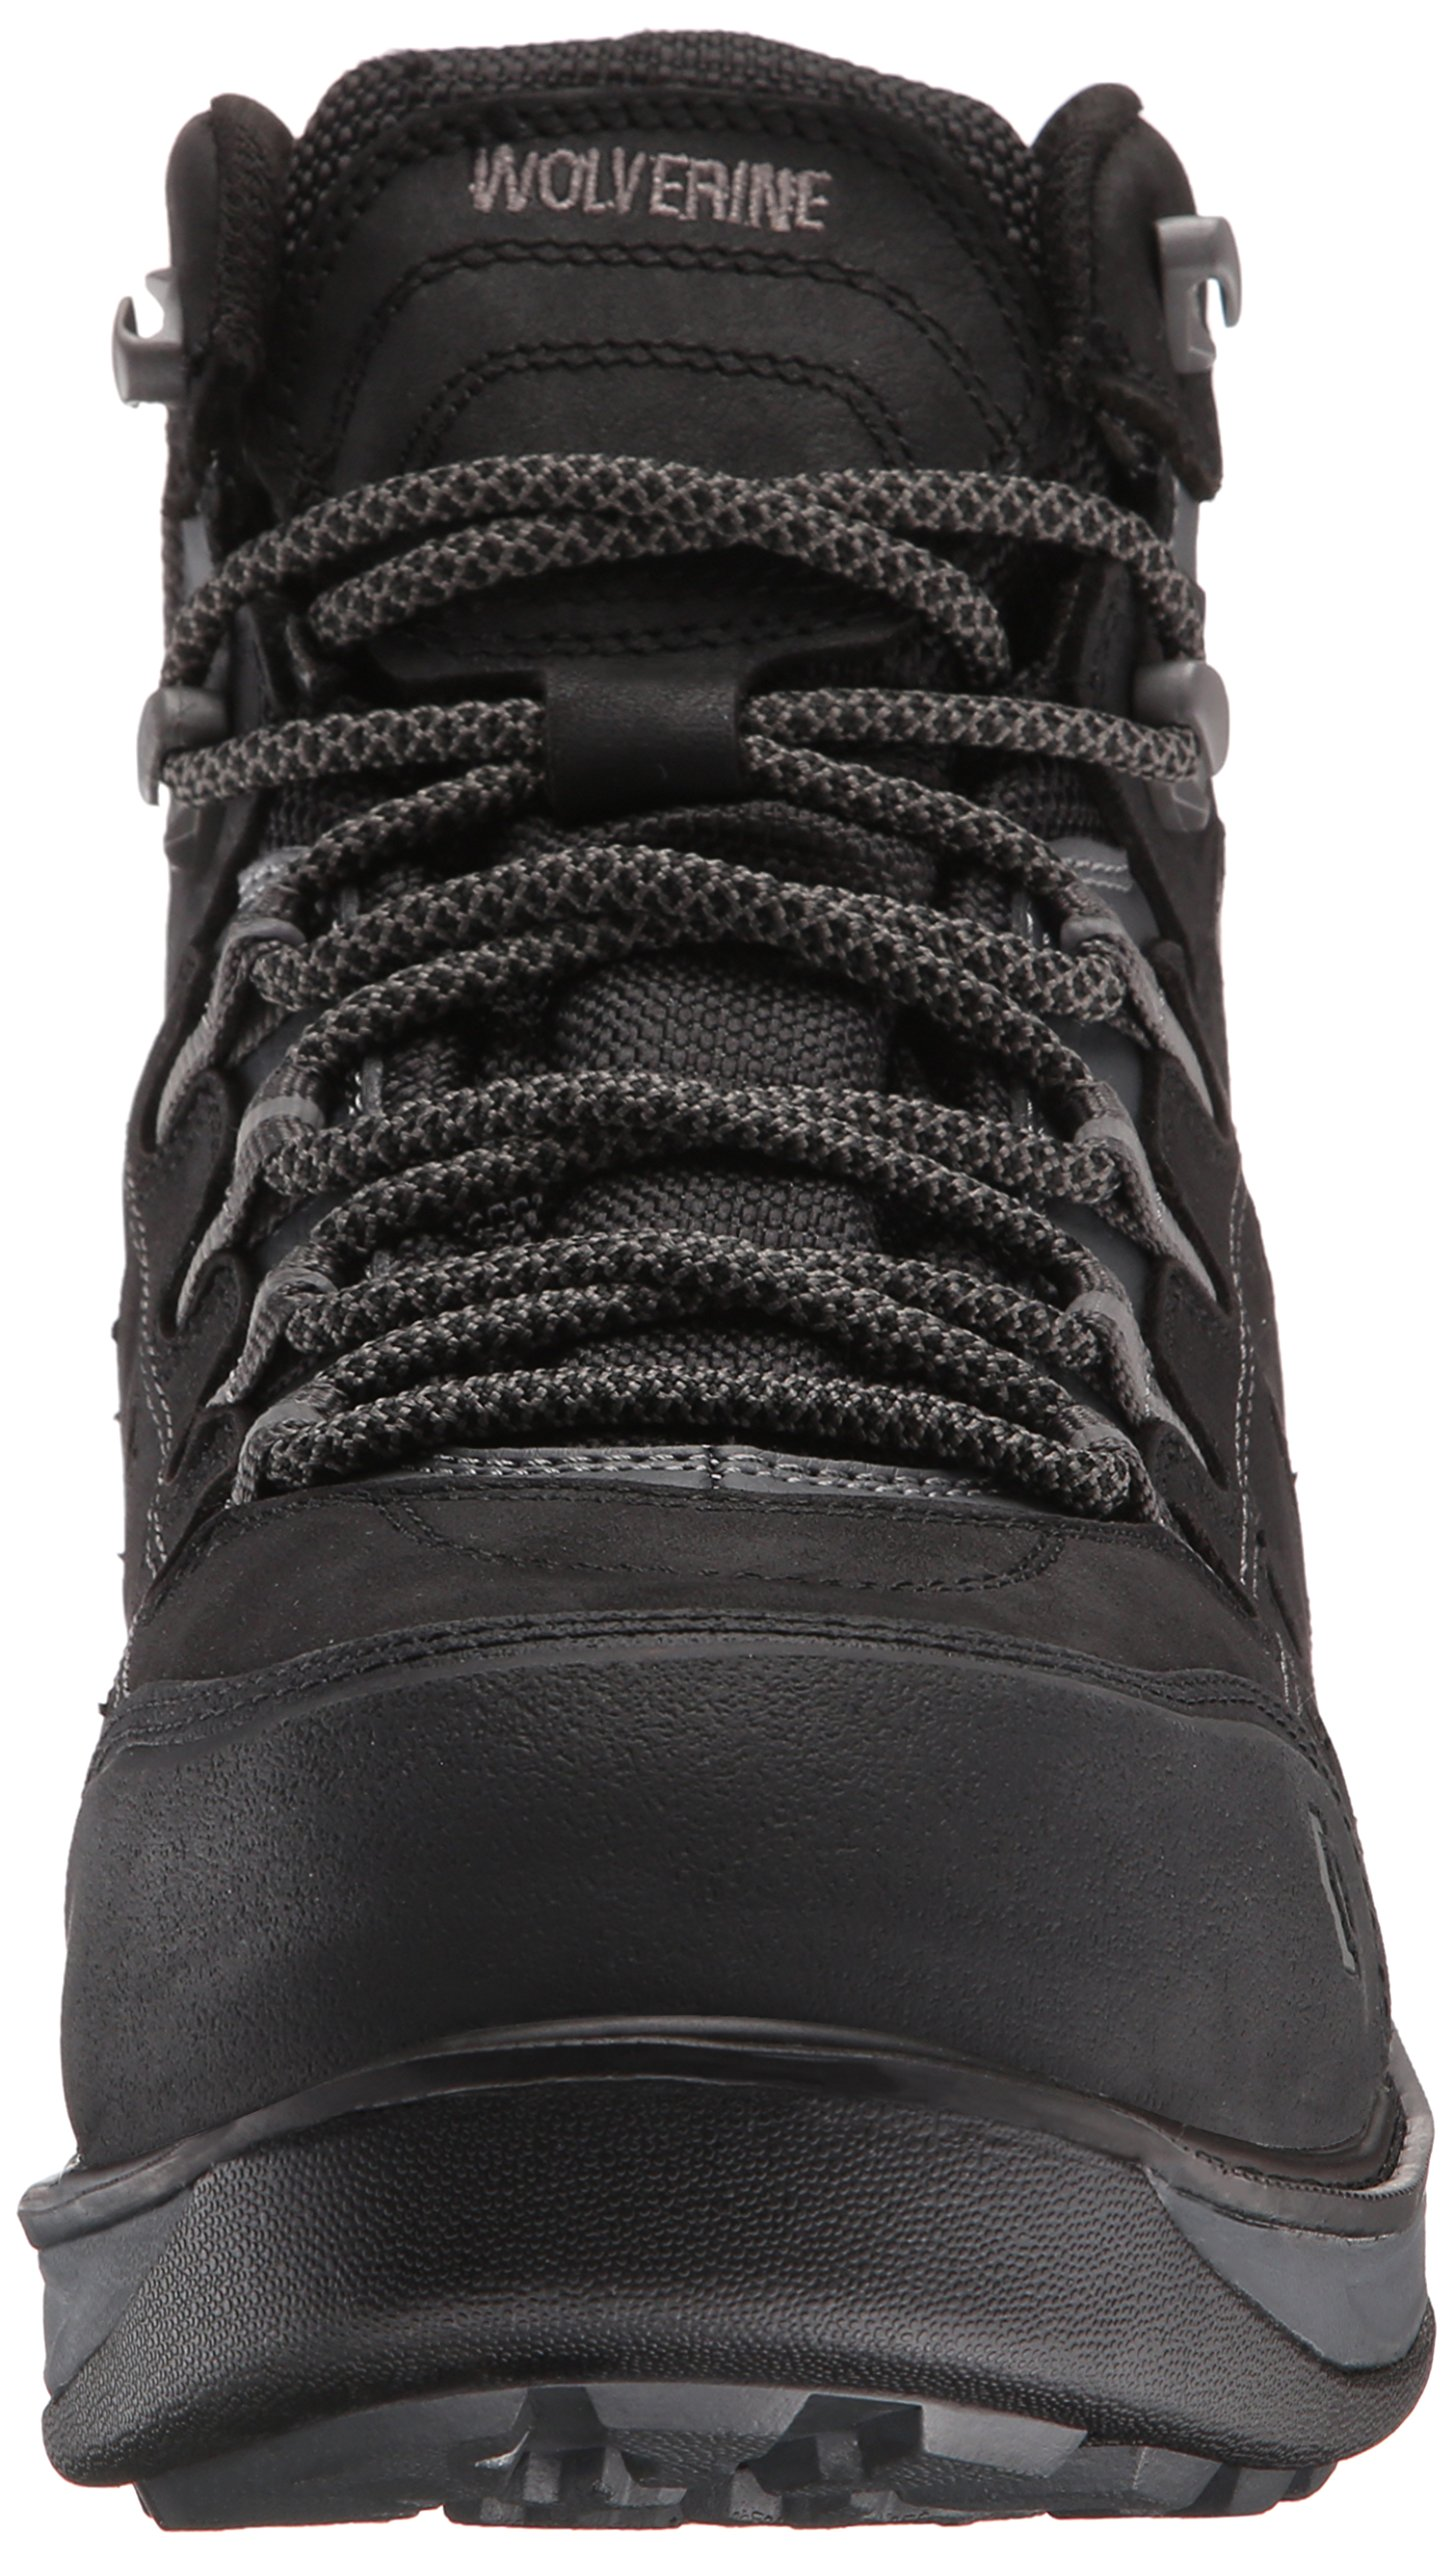 Wolverine Men's Edge LX Nano Toe Work Boot, Black/Grey, 11.5 M US by Wolverine (Image #4)